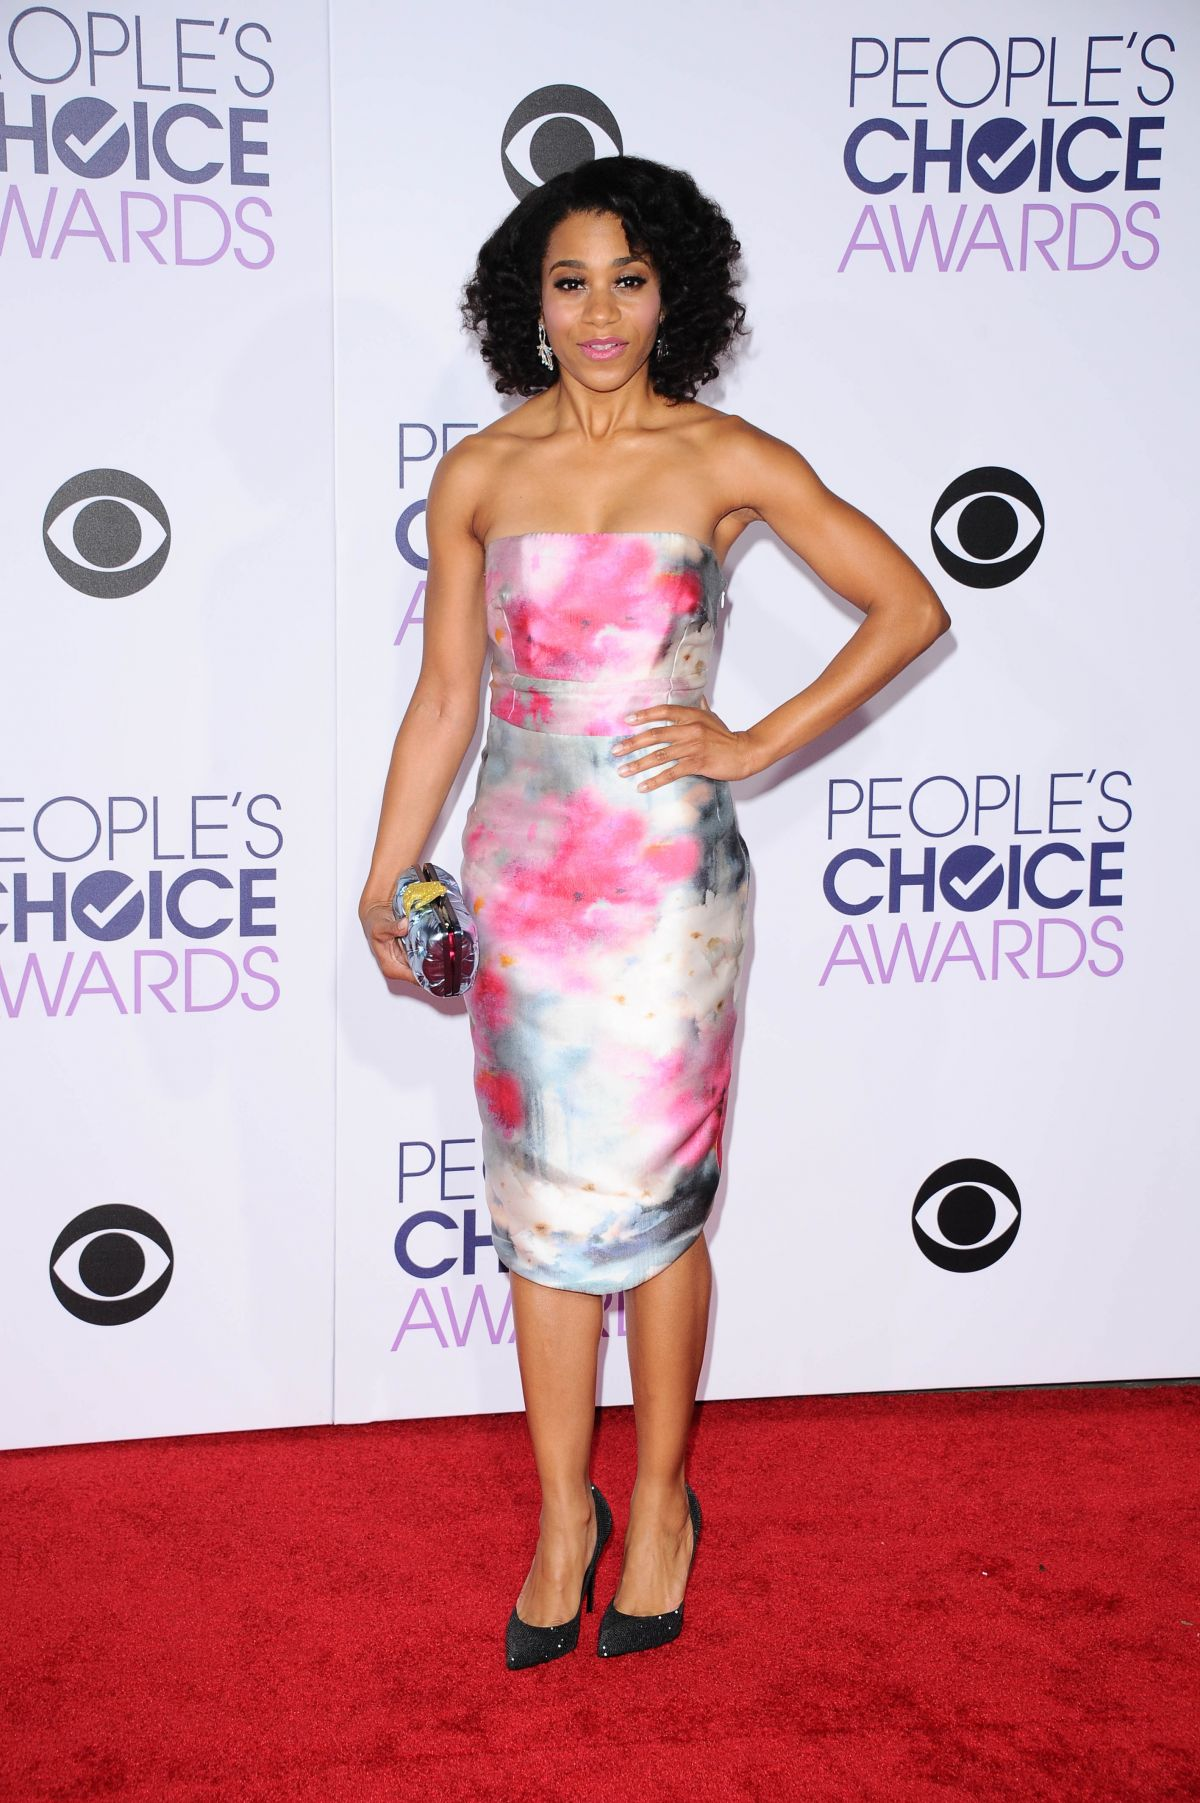 kelly mccreary tv shows